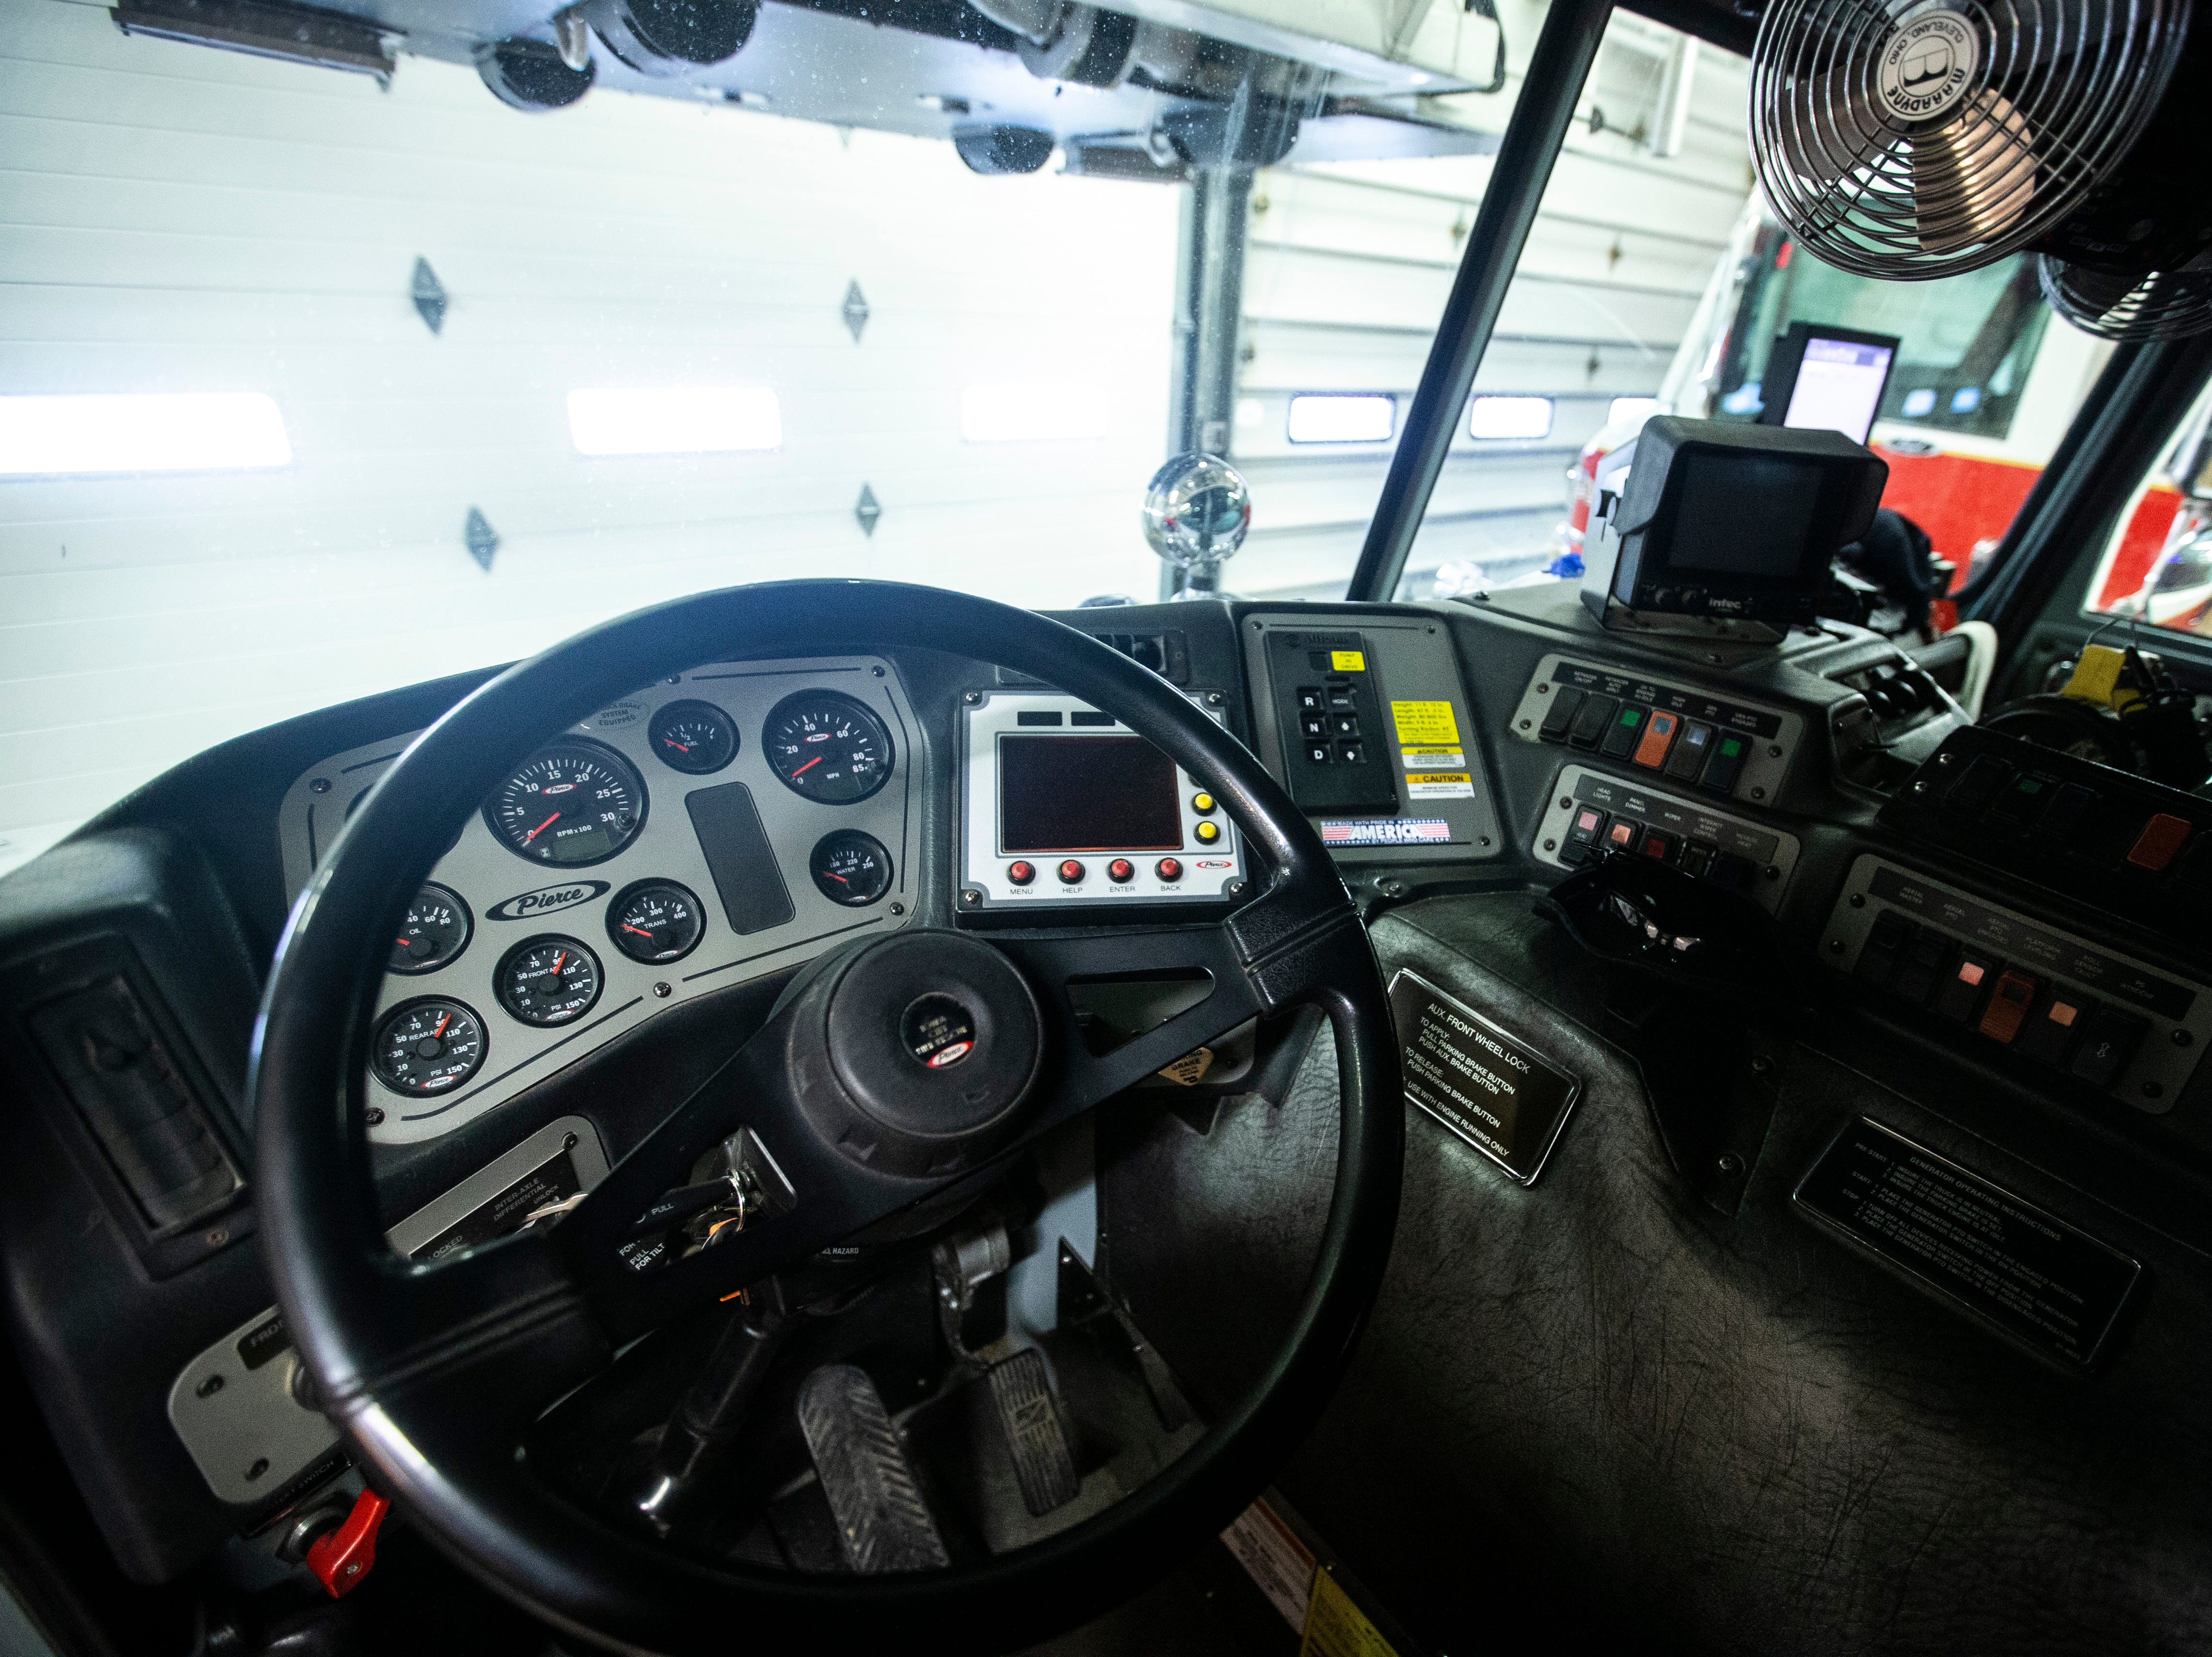 The cab inside Truck 1, a 102-foot Gruman Aerial Cat platform ladder truck, on Thursday, March 7, 2019, inside Fire Station No. 1, at 10 South Gilbert Street in downtown Iowa City, Iowa.